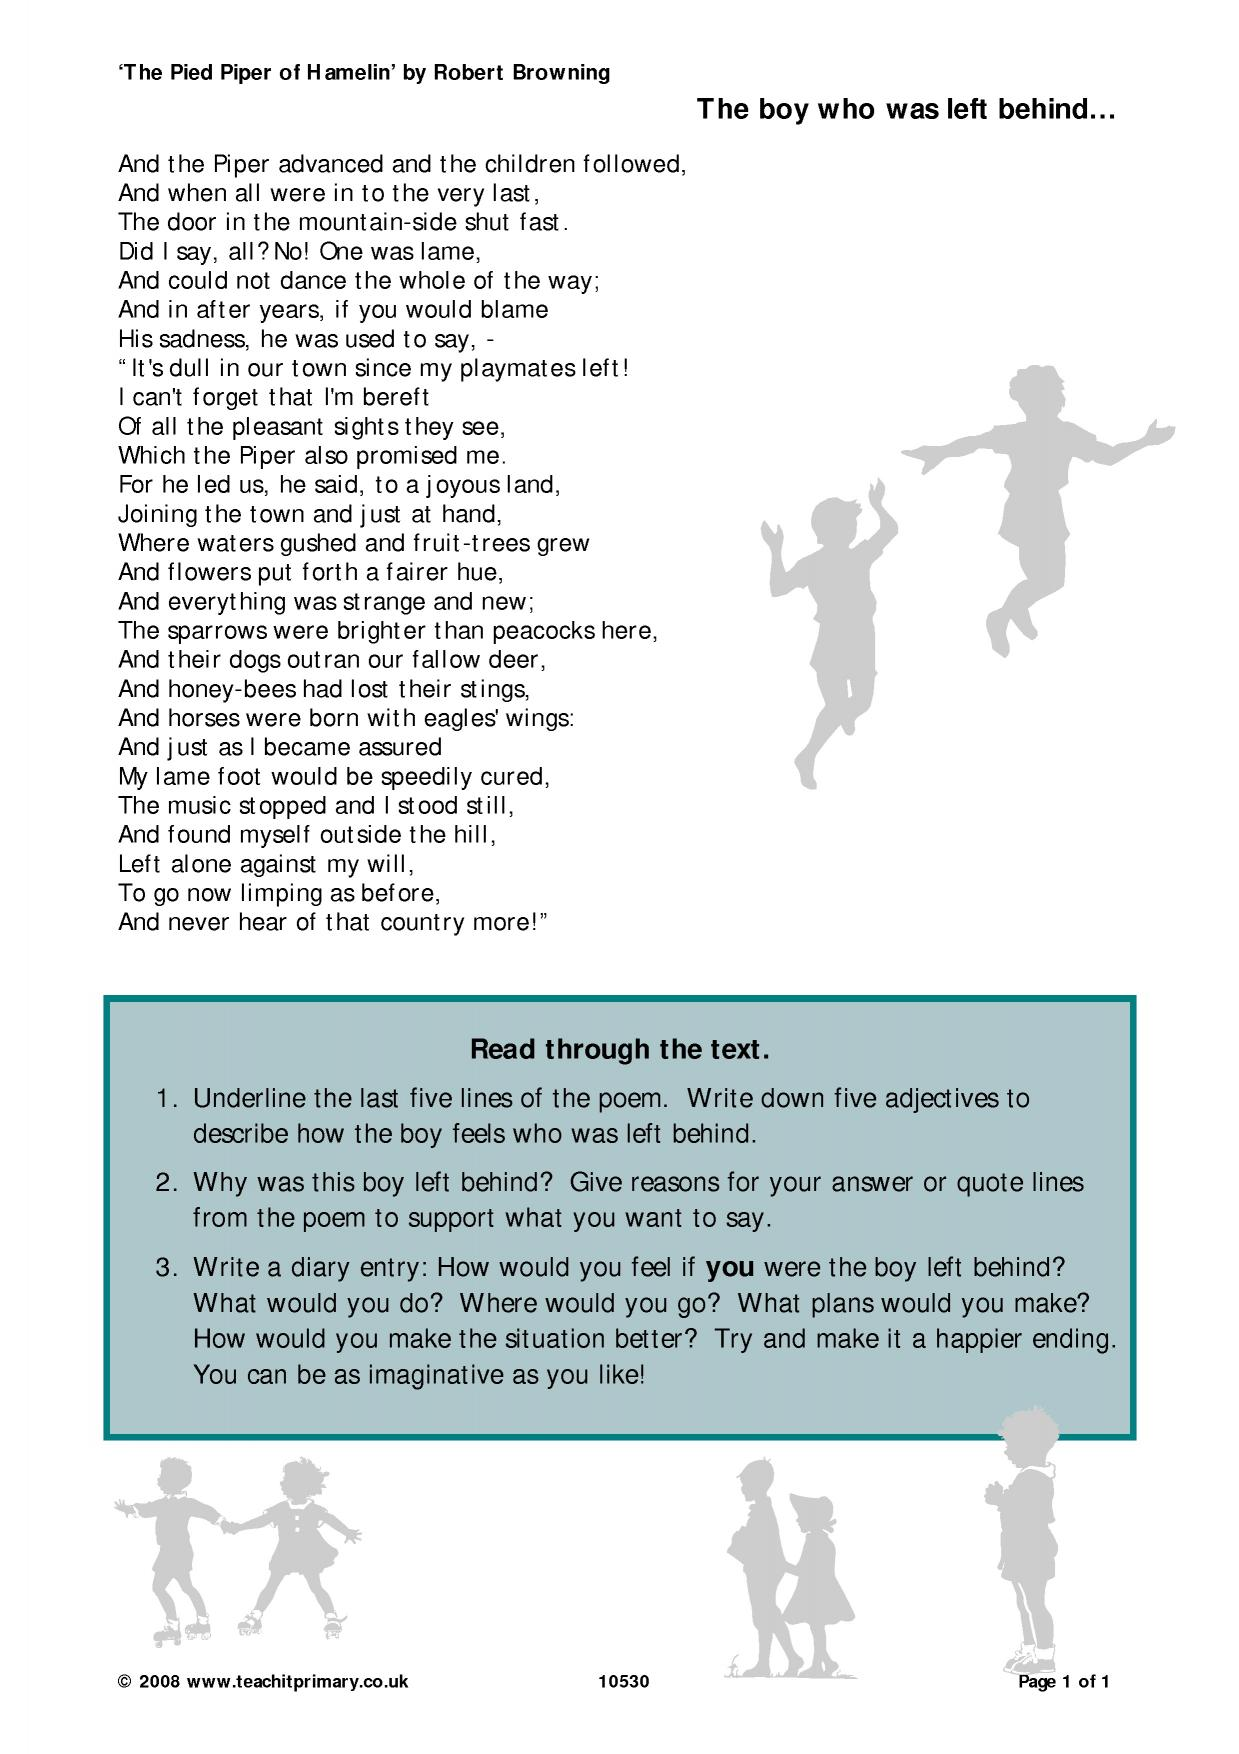 Ideas for lesson plans and activities based on the Pied Piper of Hamelin